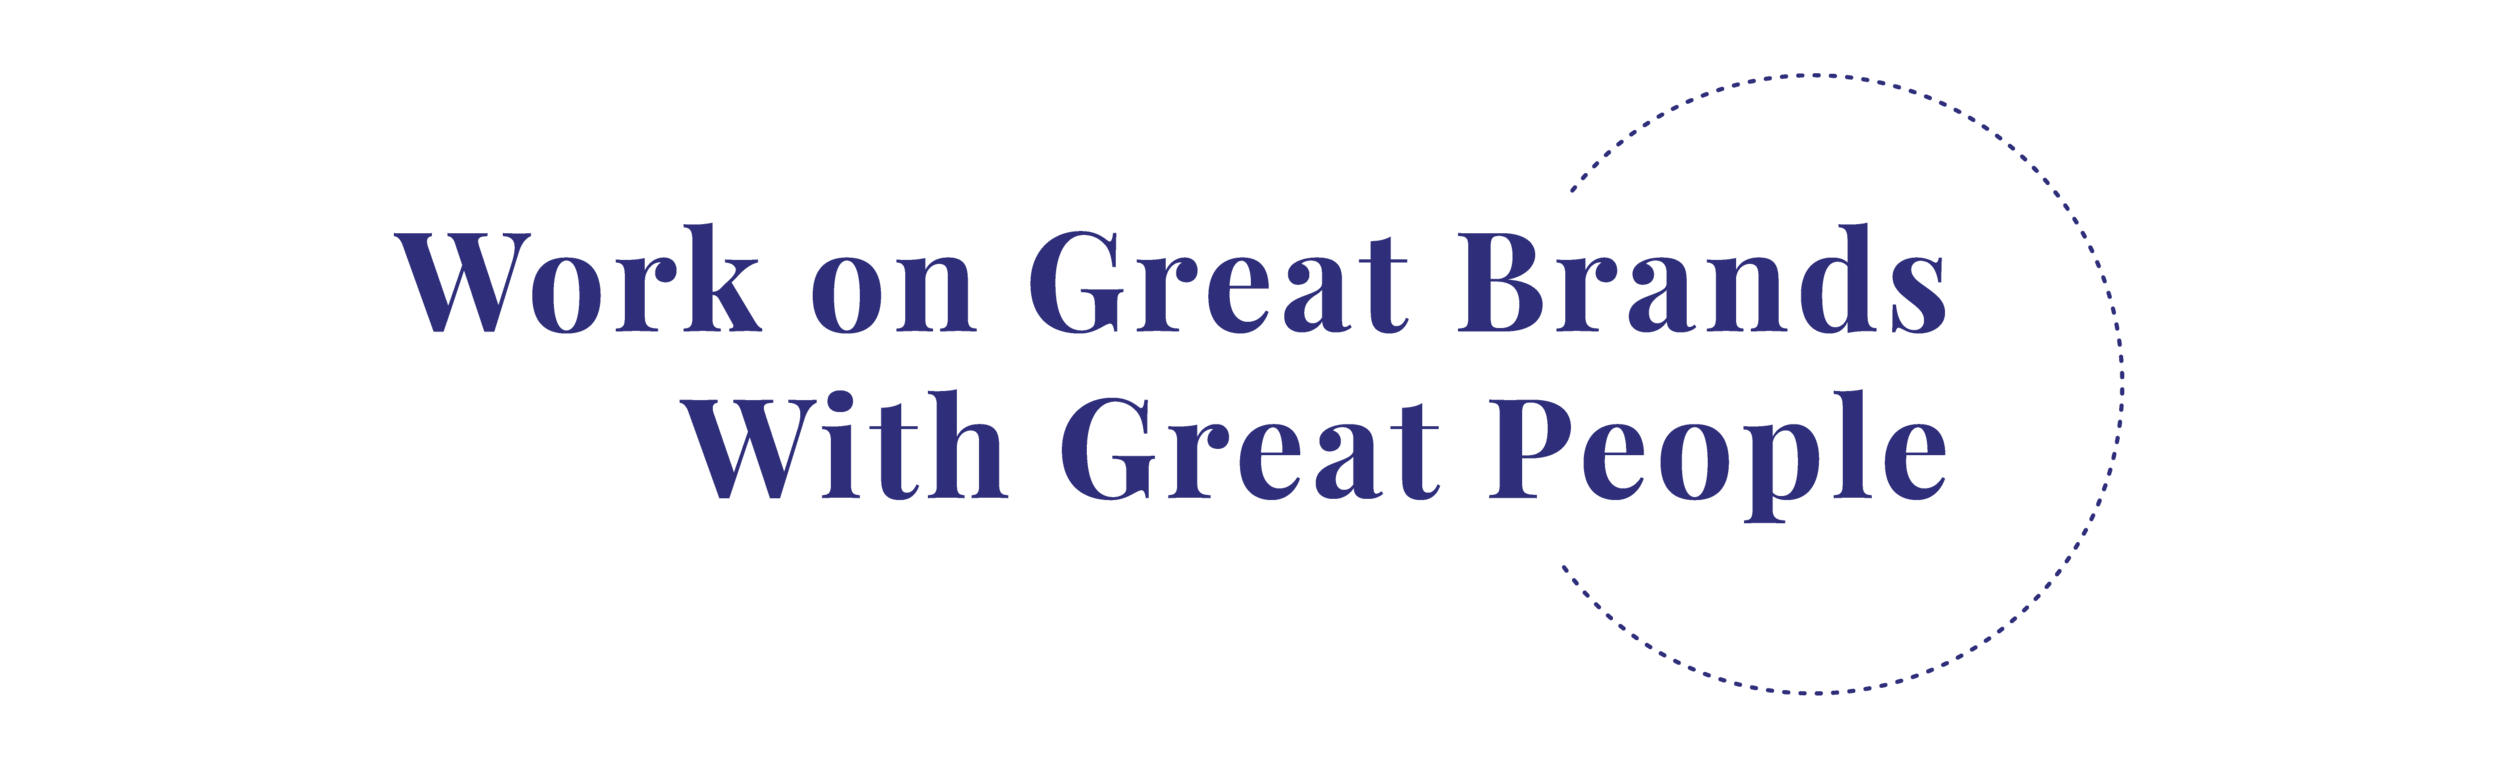 GREAT BRAND W- GREAT PEOPLE BLUE.png